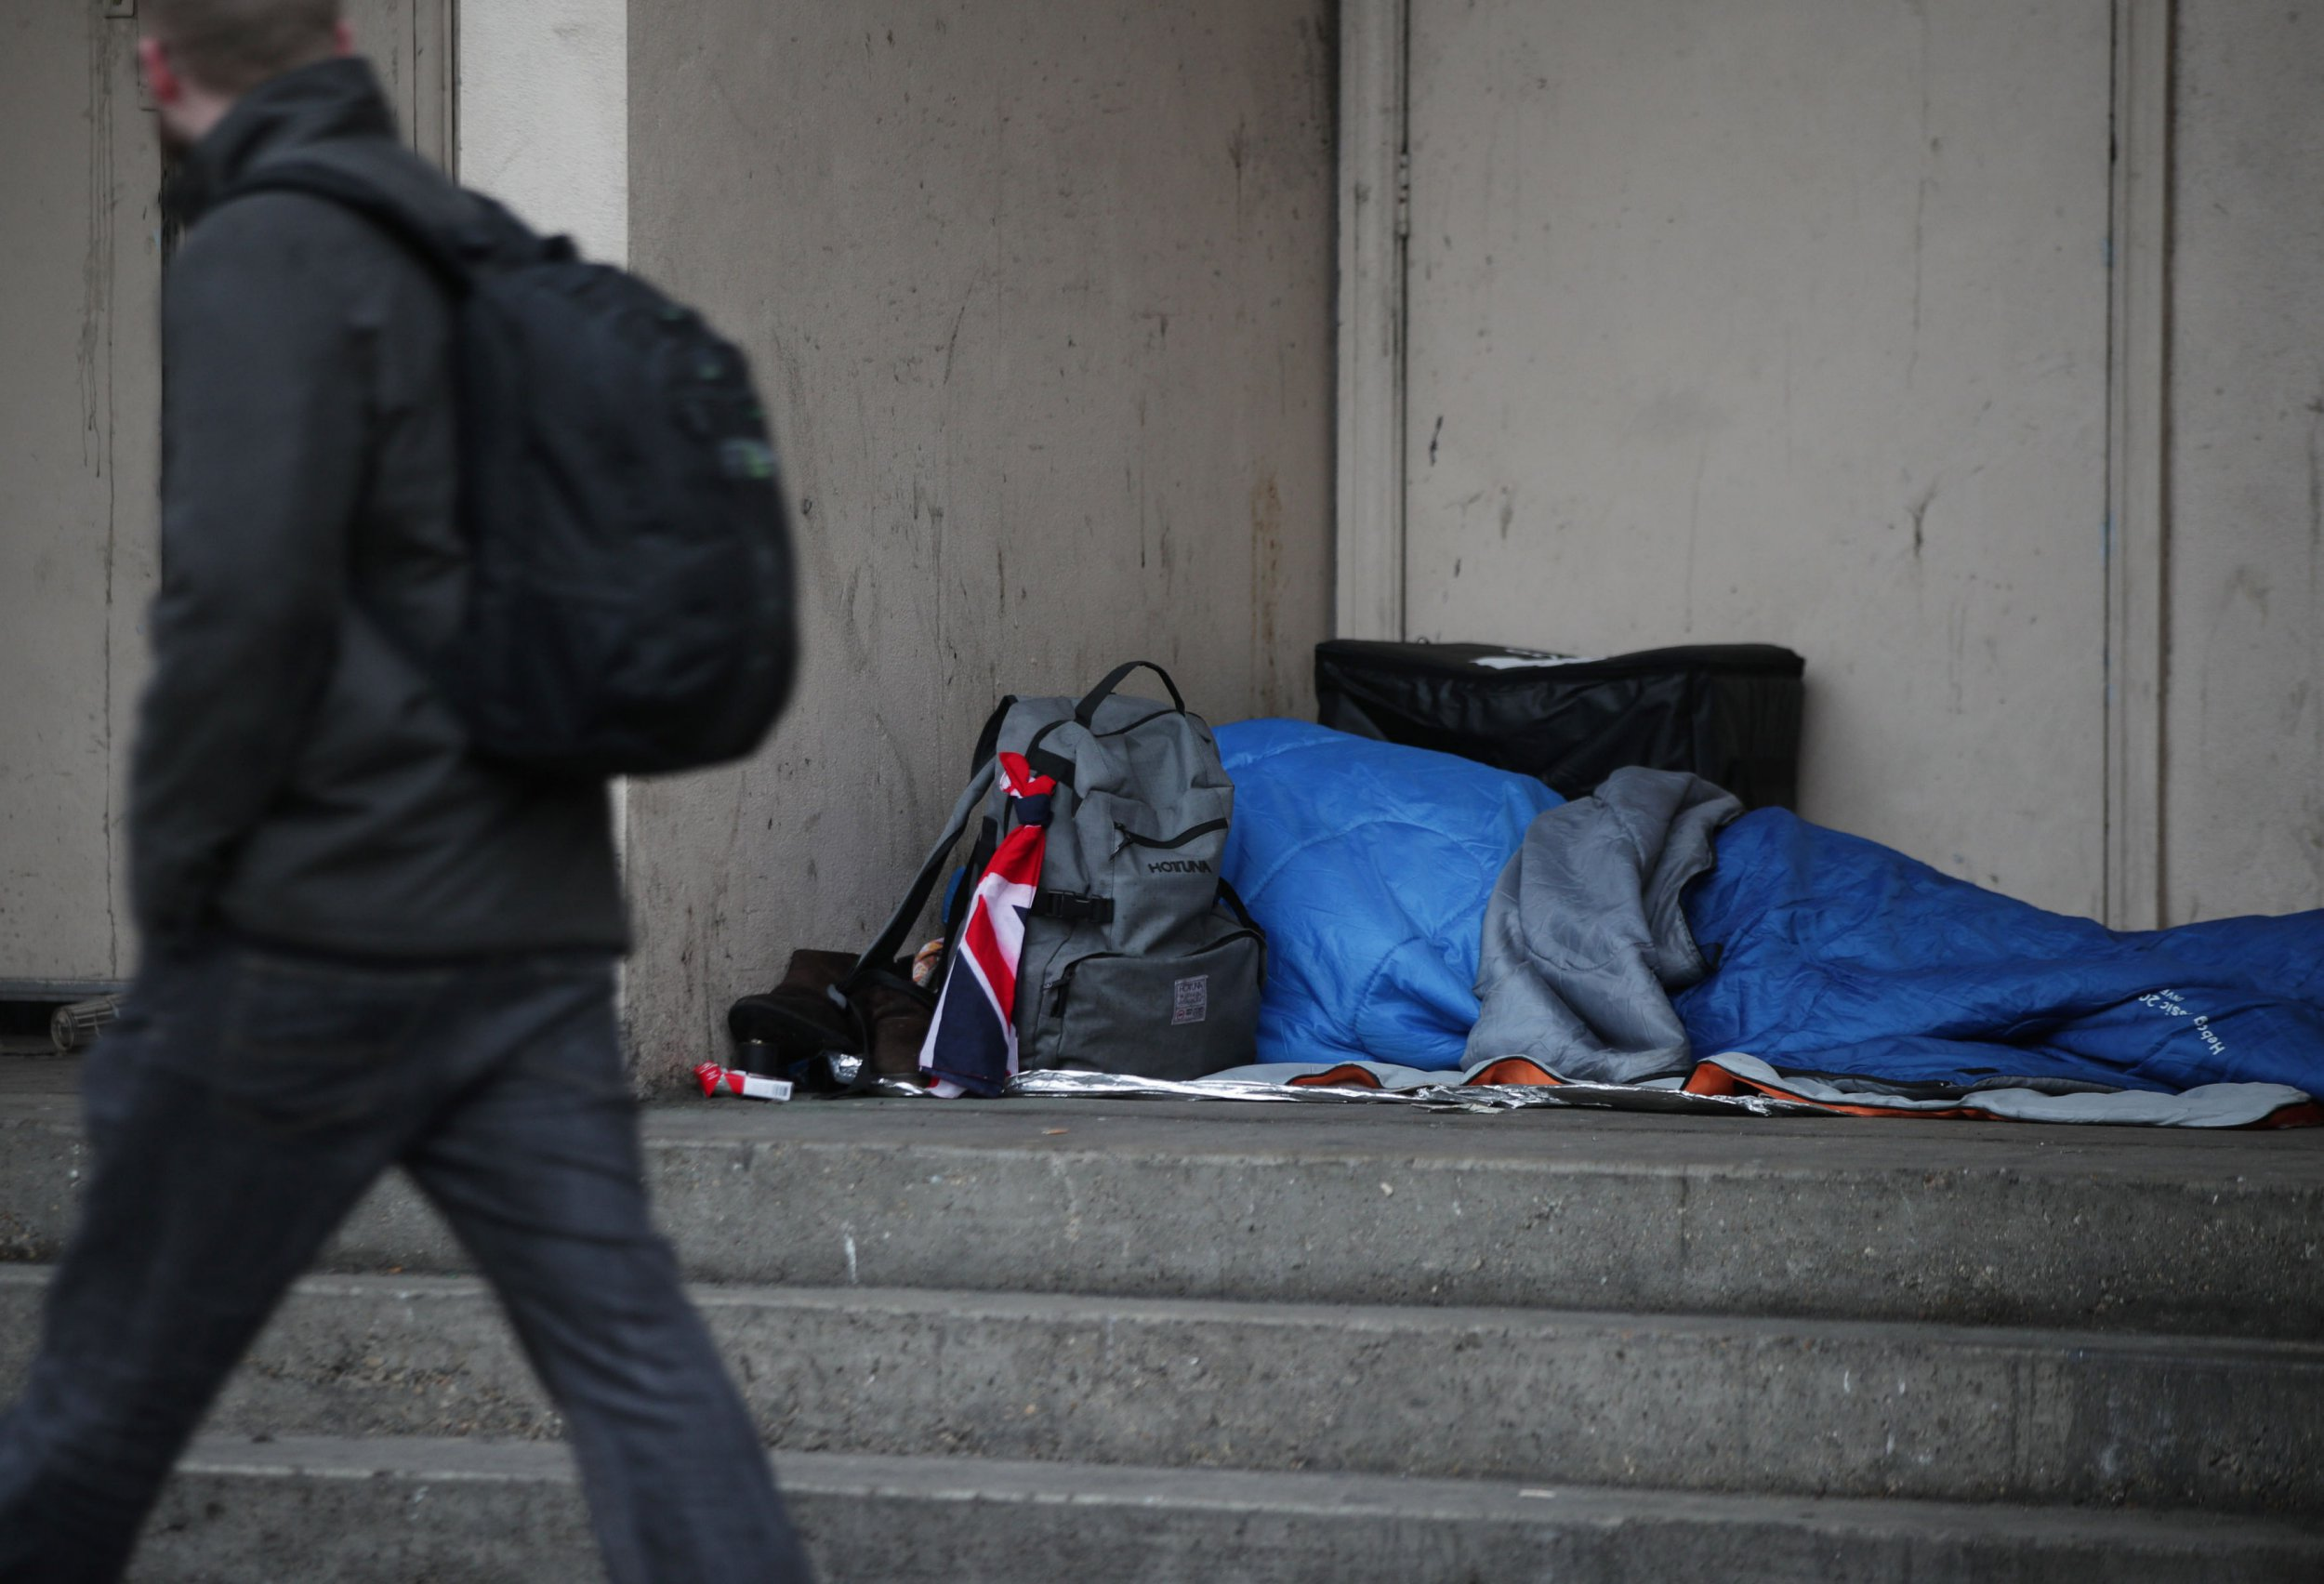 File photo dated 07/02/17 of a person sleeping rough in a doorway. More than nine in 10 deaths of homeless people were in cities and towns in 2017 - with only 26 homeless people dying in rural areas, new data has revealed. PRESS ASSOCIATION Photo. Picture date: Monday February 25, 2019. See PA story POLITICS Homeless. Photo credit should read: Yui Mok/PA Wire